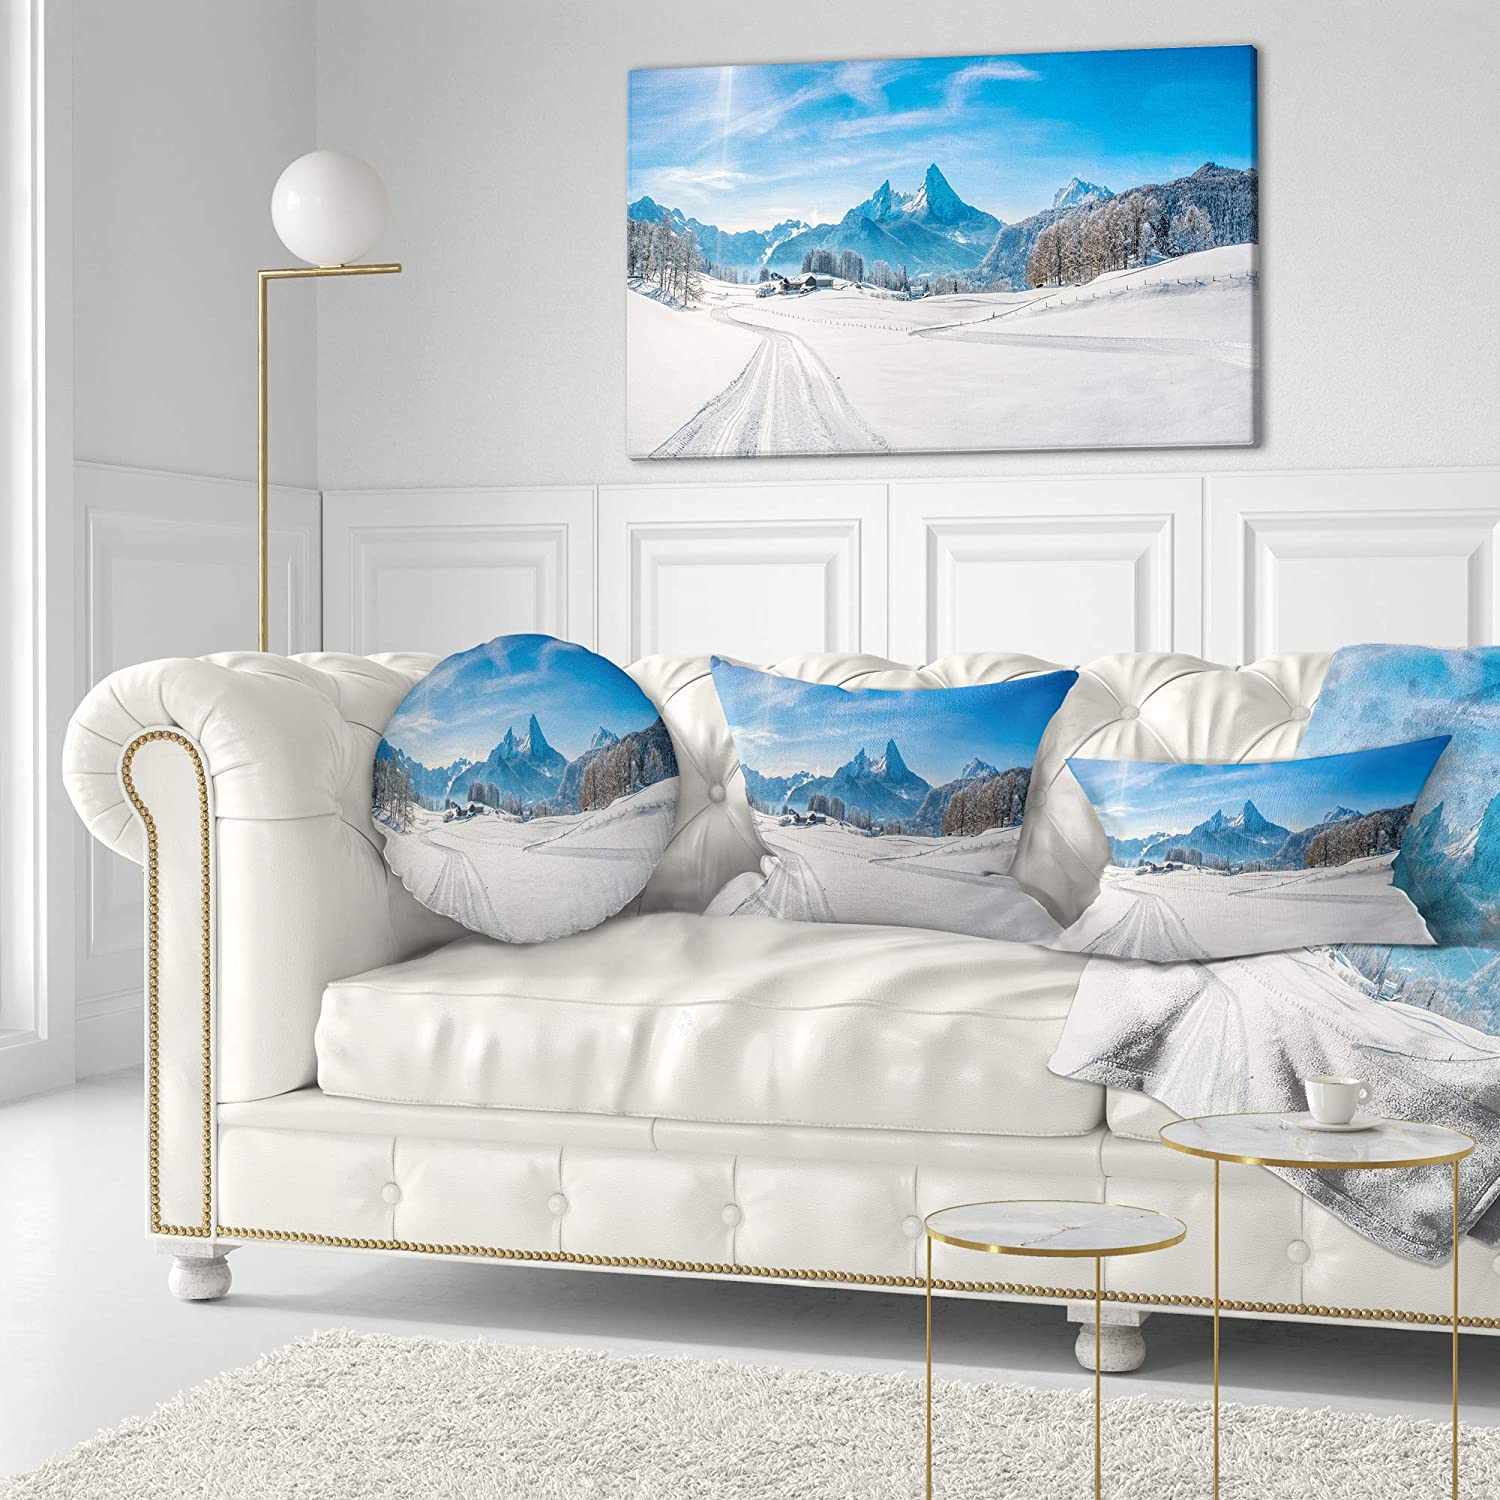 Sofa Throw Pillow 20 Insert Side Designart CU15320-20-20-C Winter in Bavarian Alps Panorama Landscape Printed Round Cushion Cover for Living Room